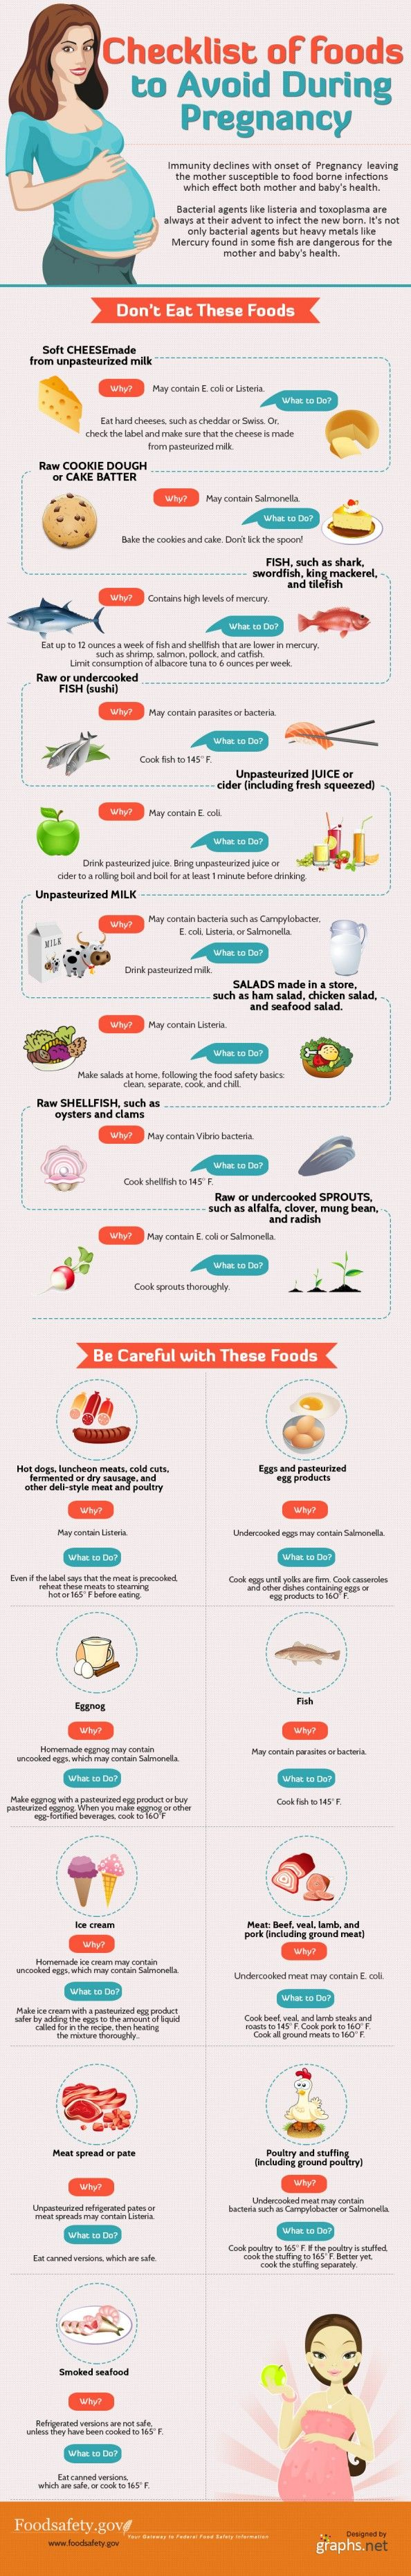 Foods To Avoid During Pregnancy Infographic. Wish I would've seen this earlier, glad I did my research before eating!!!